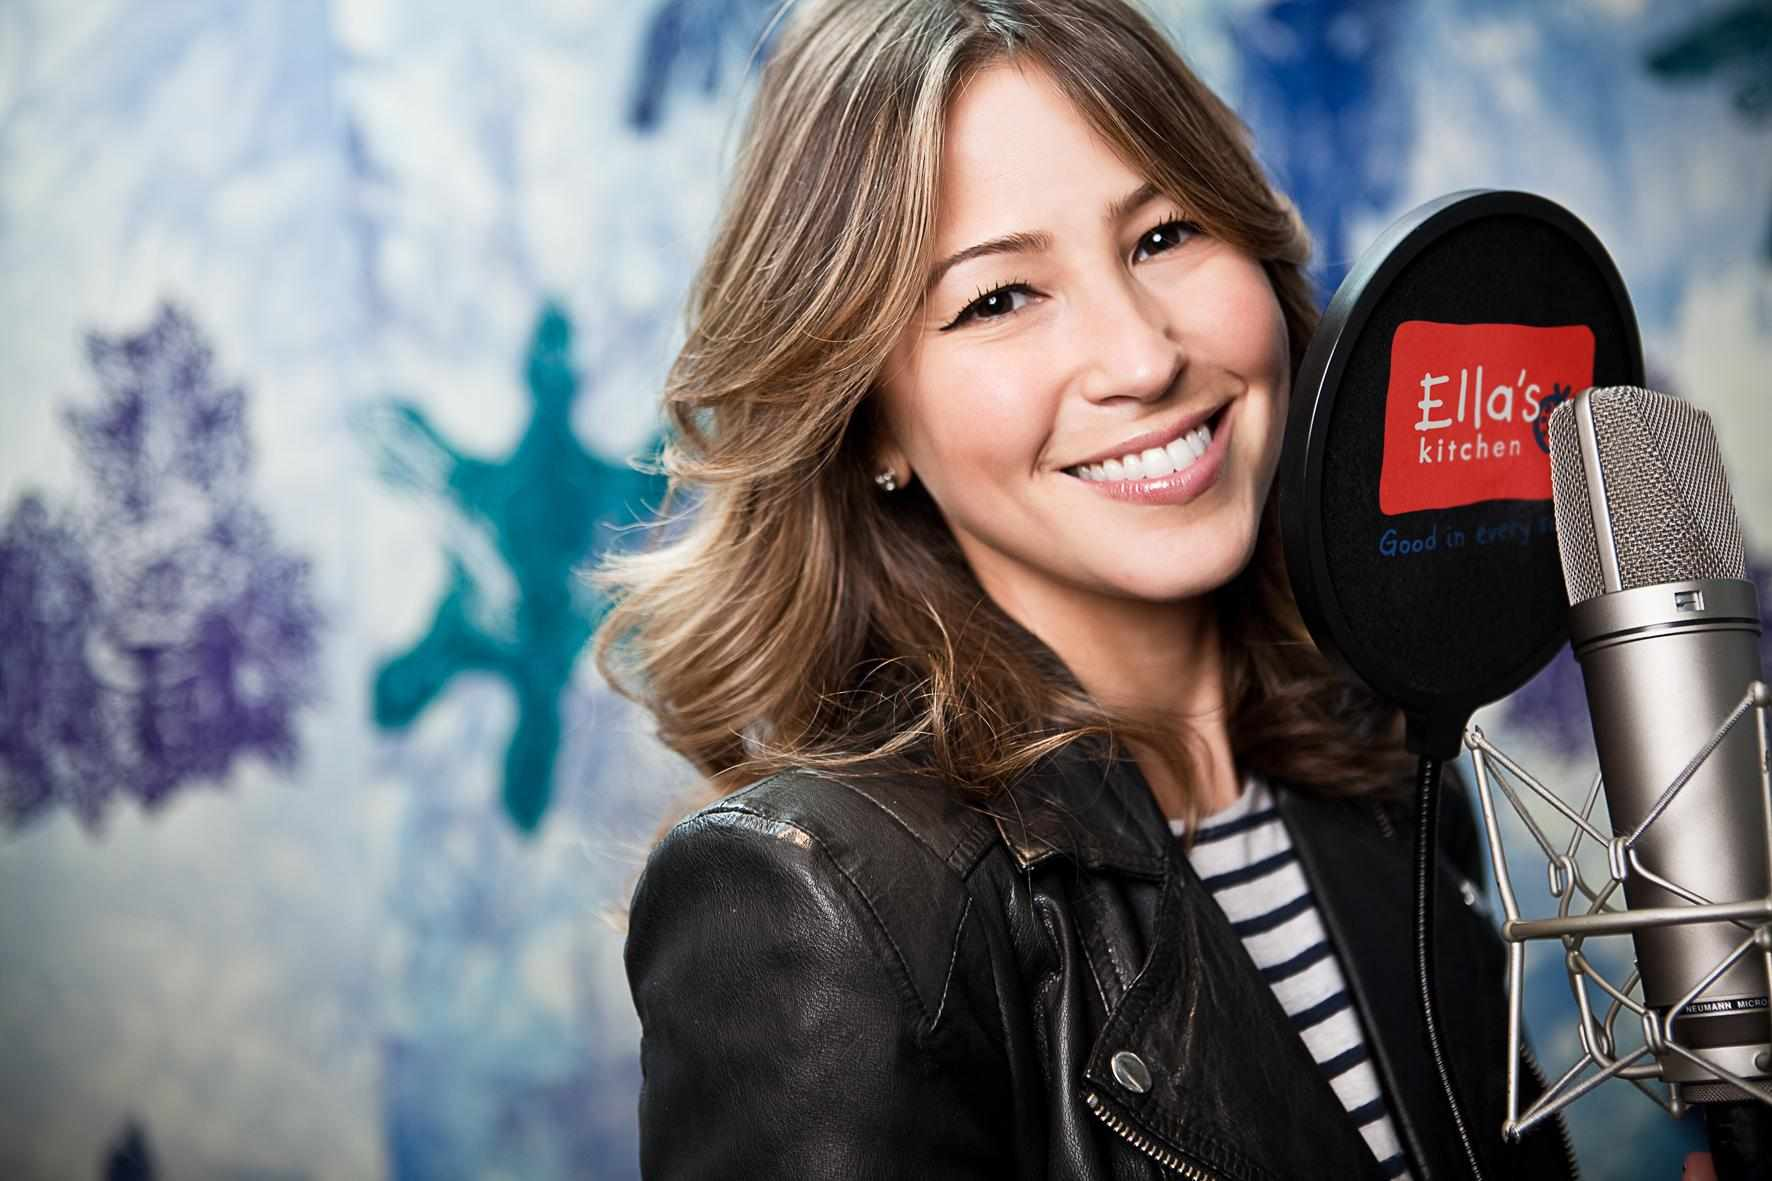 rachel-stevens-talks-about-supermum-pressure-and-healthy-eating_32291